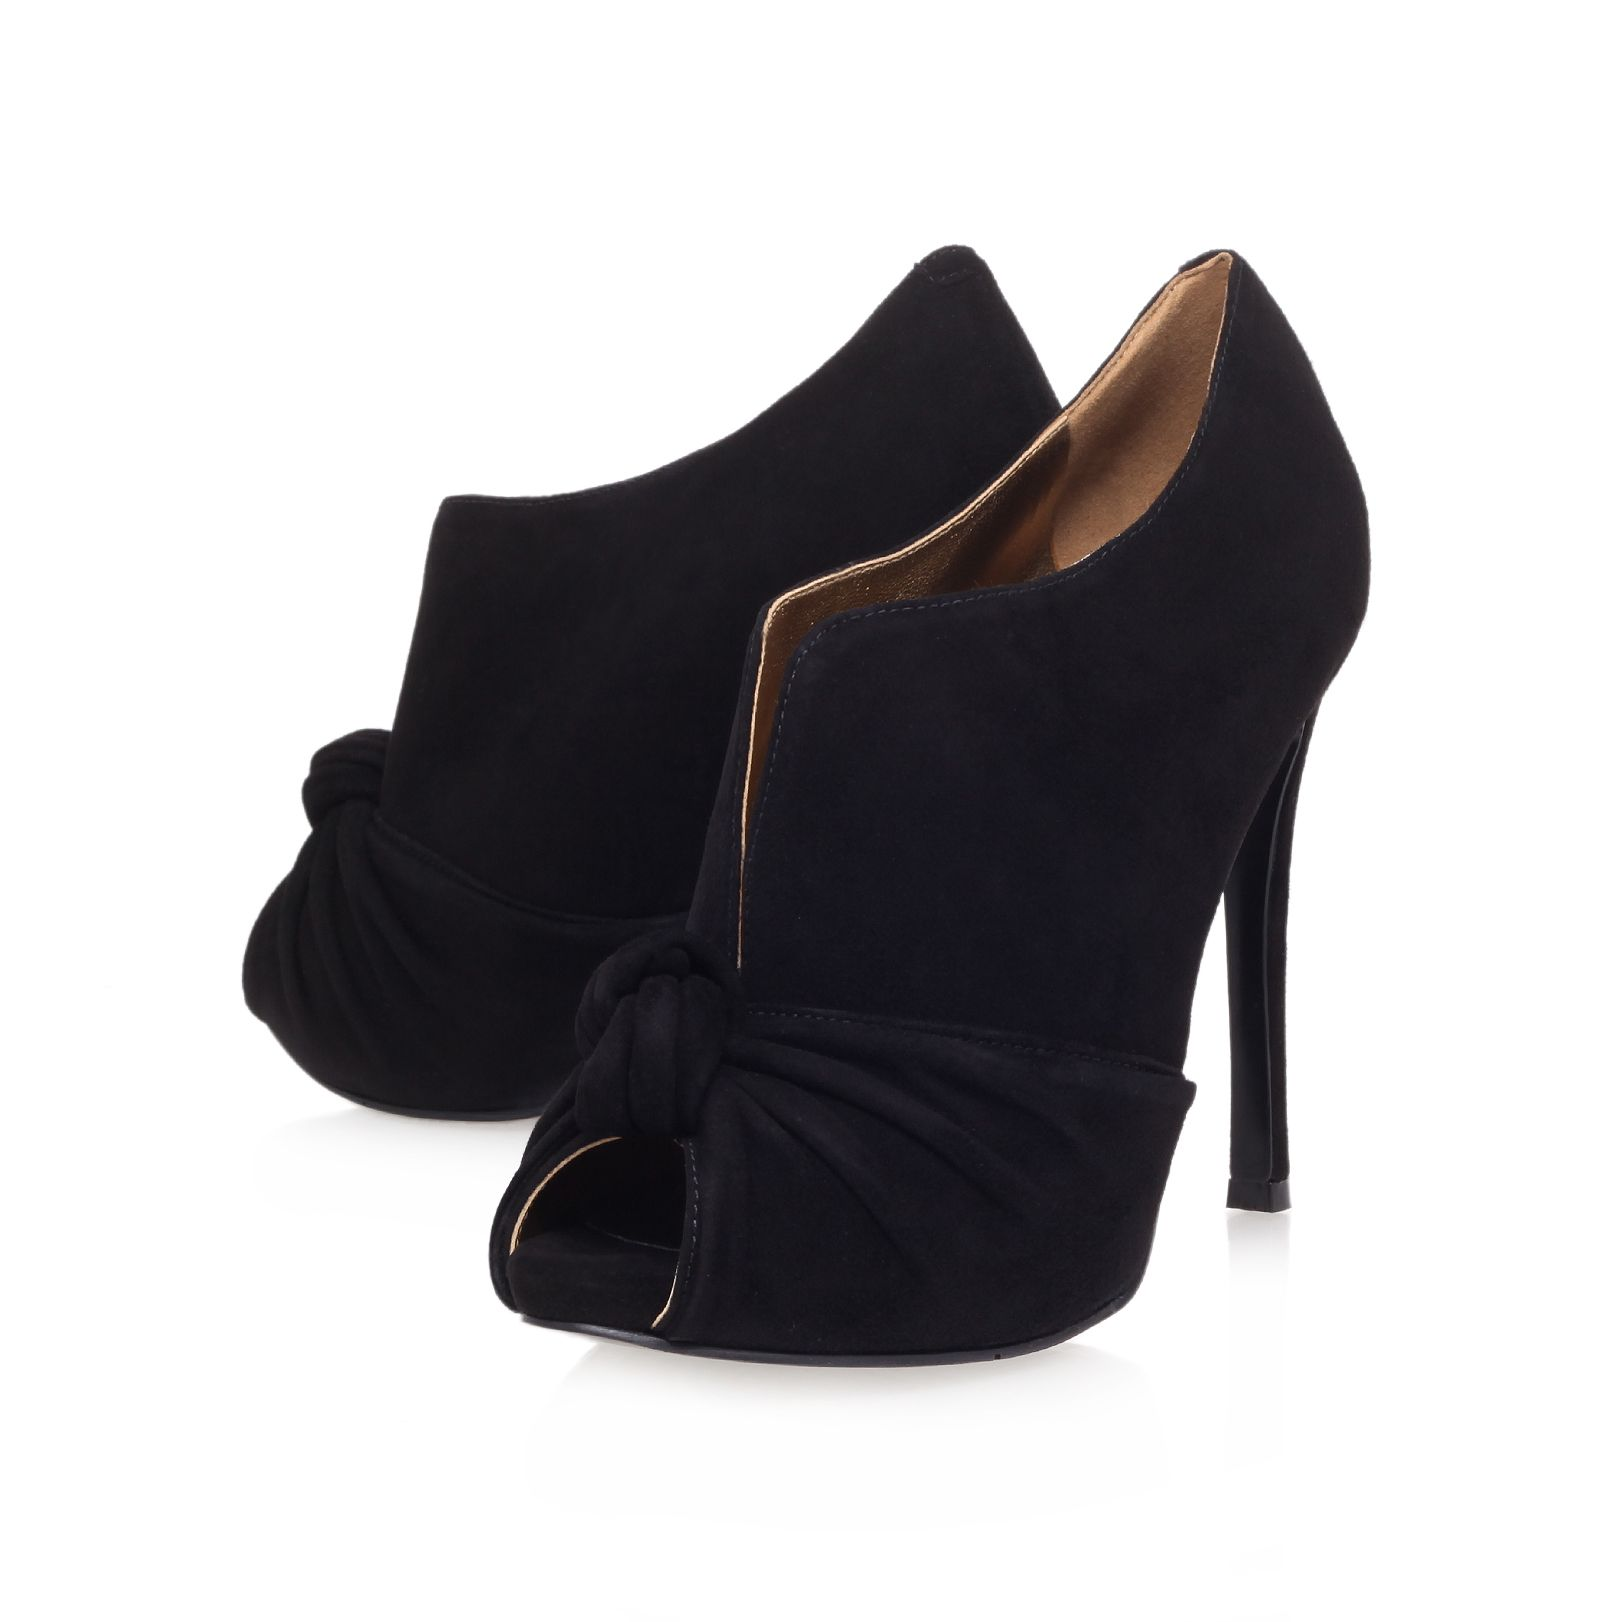 Amiah high heel high fronted peep toe courts